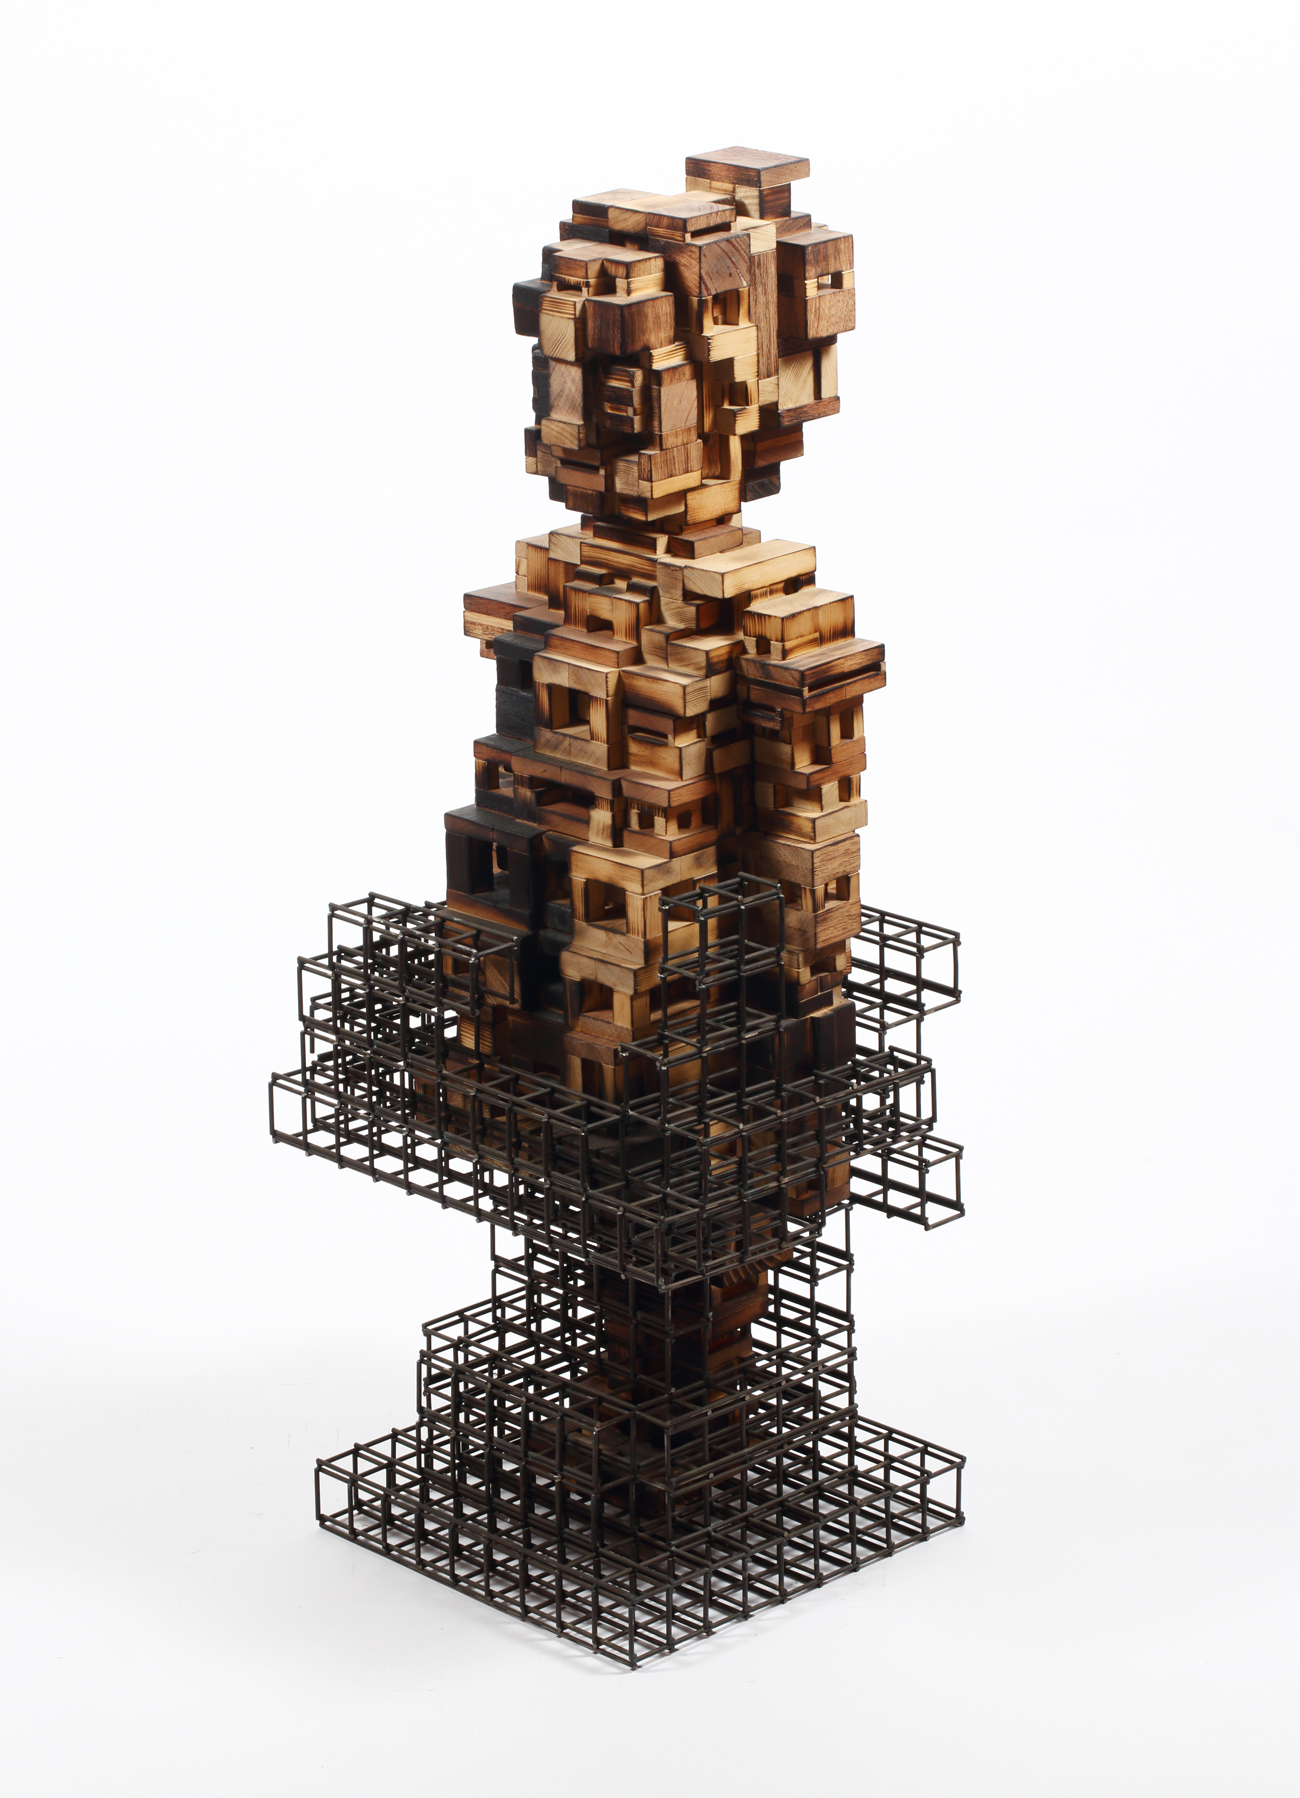 Build life-girl1,wood,steel,34x32x81(cm),2014Build life-girl2,wood,steel,37x20x117(cm),2015Build lif